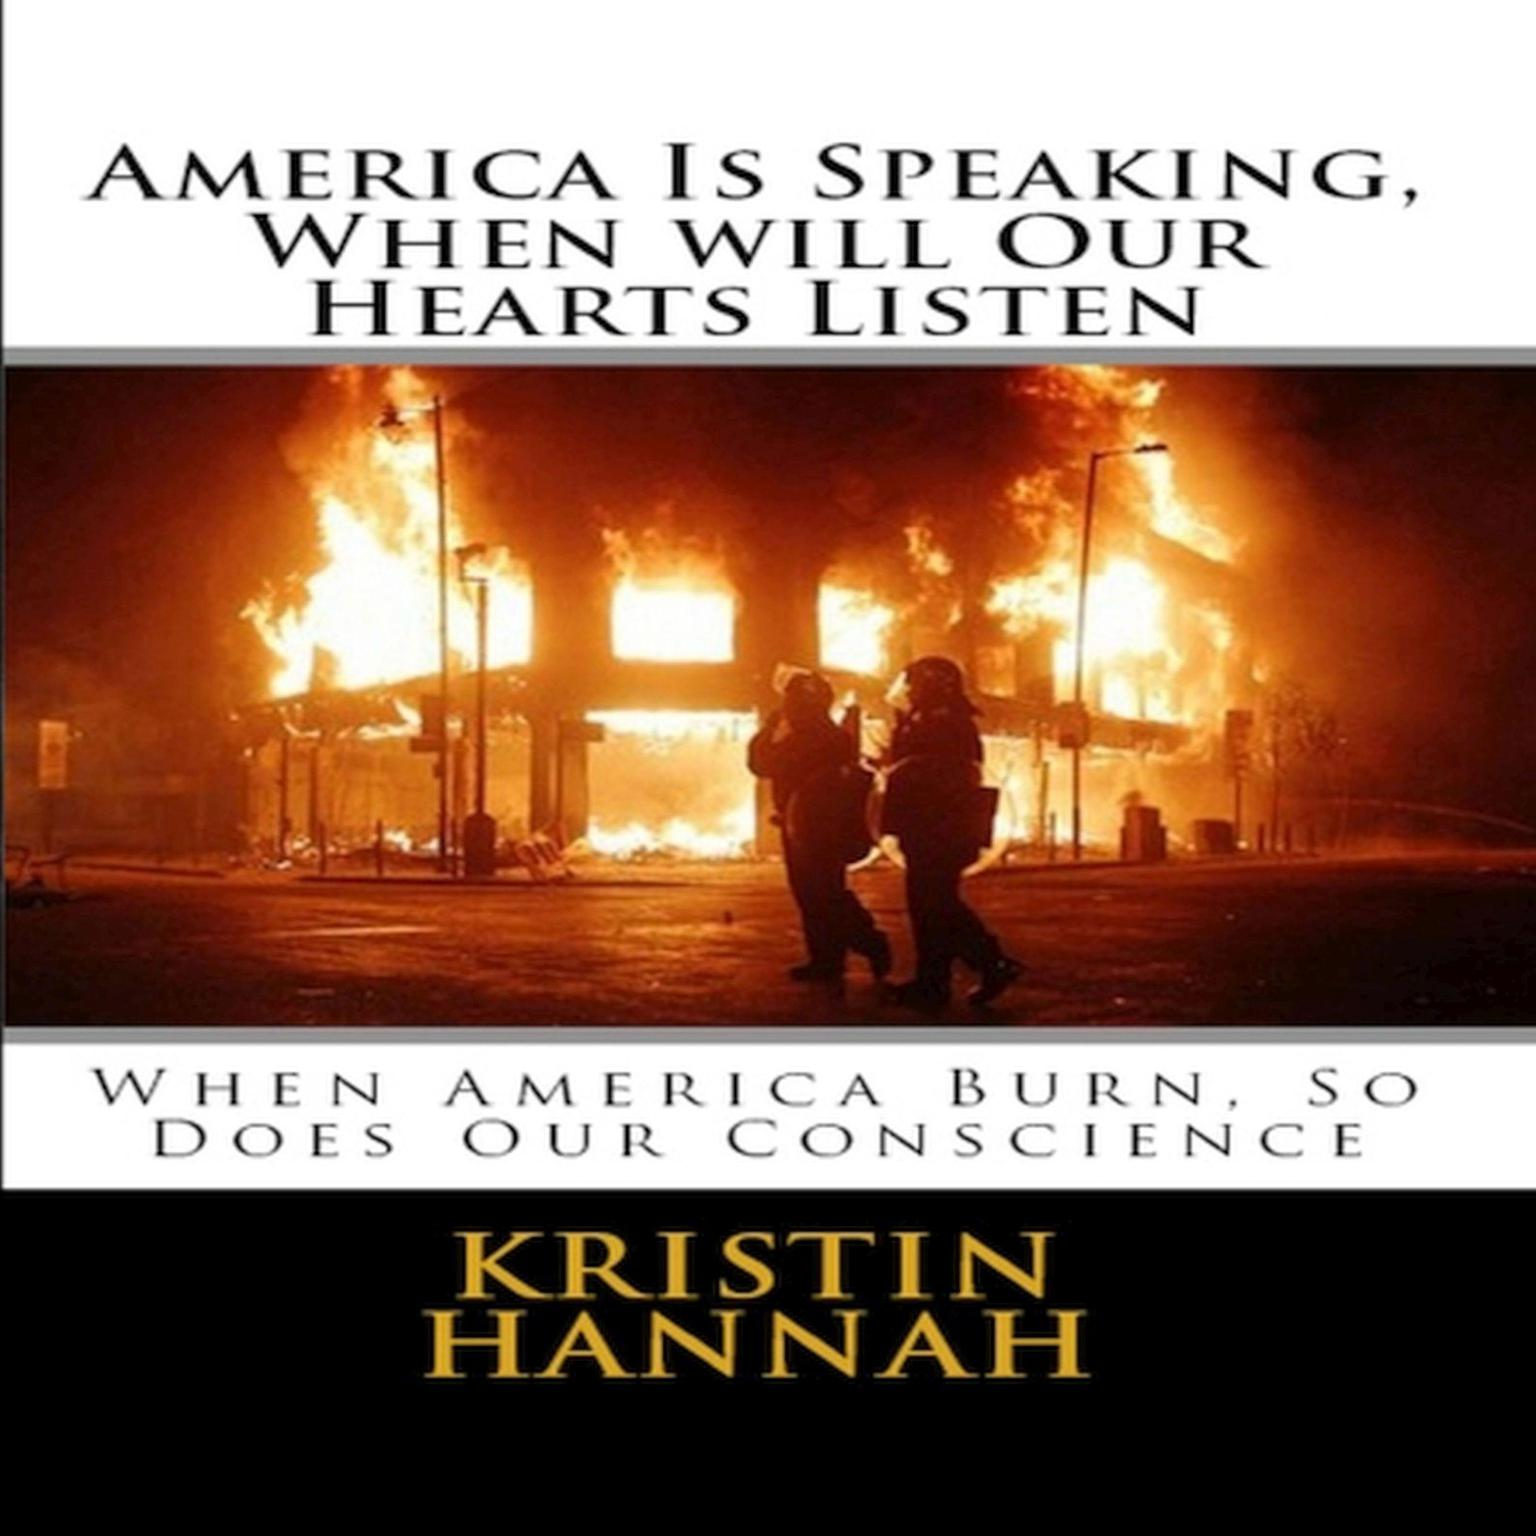 Printable America Is Speaking, When will Our Hearts Listen: When America Burn, So Does Our Conscience Audiobook Cover Art